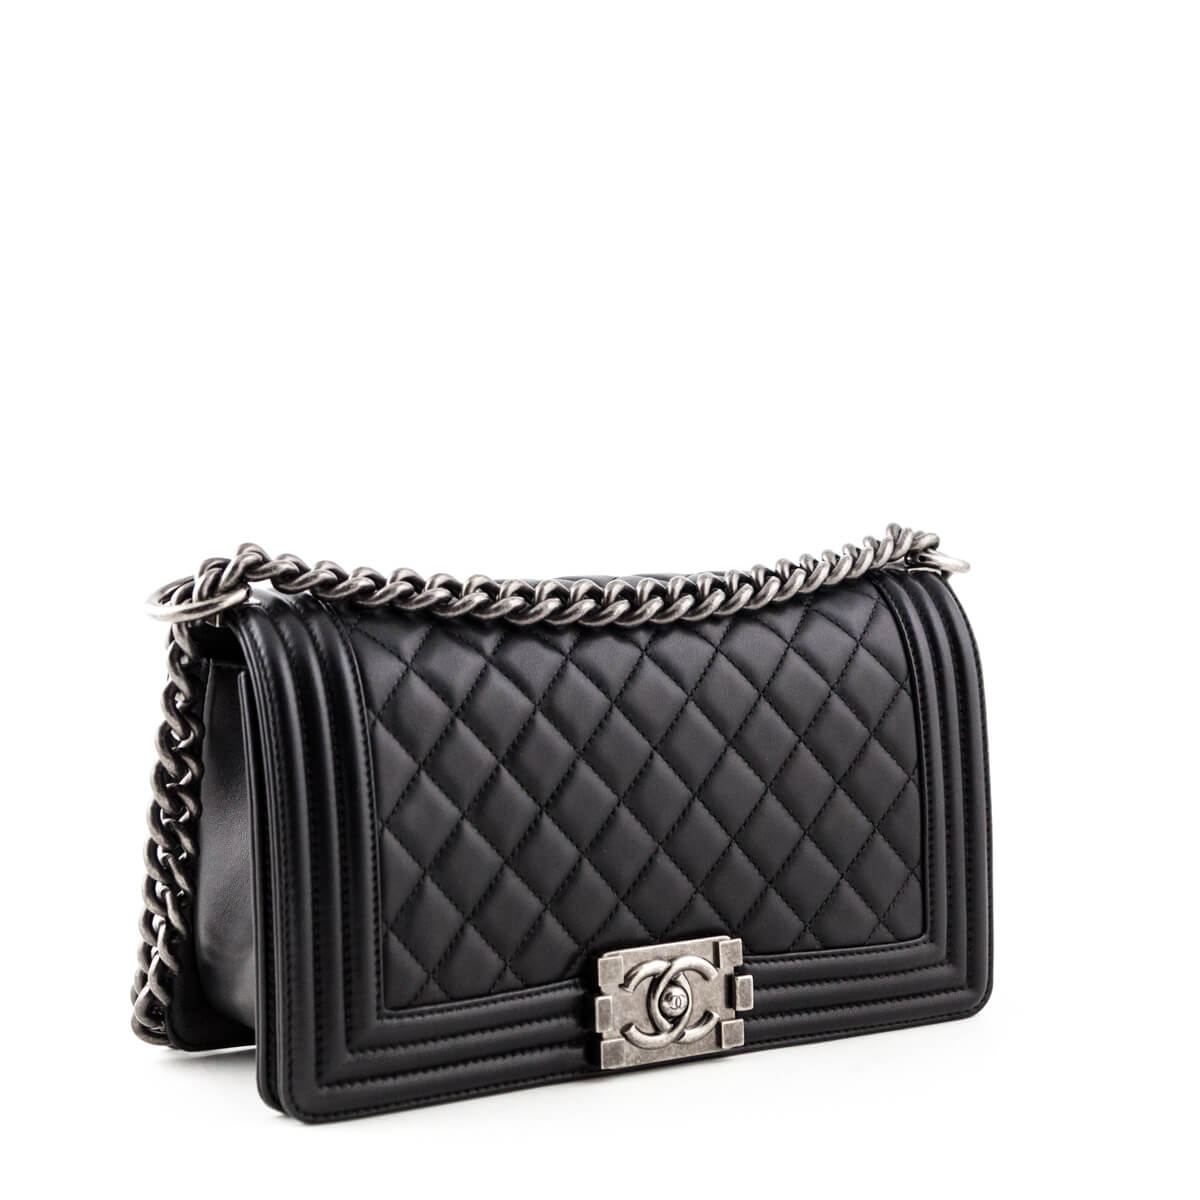 0534c30031d24 ... Chanel Black Calfskin Old Medium Boy Bag - LOVE that BAG - Preowned  Authentic Designer Handbags ...